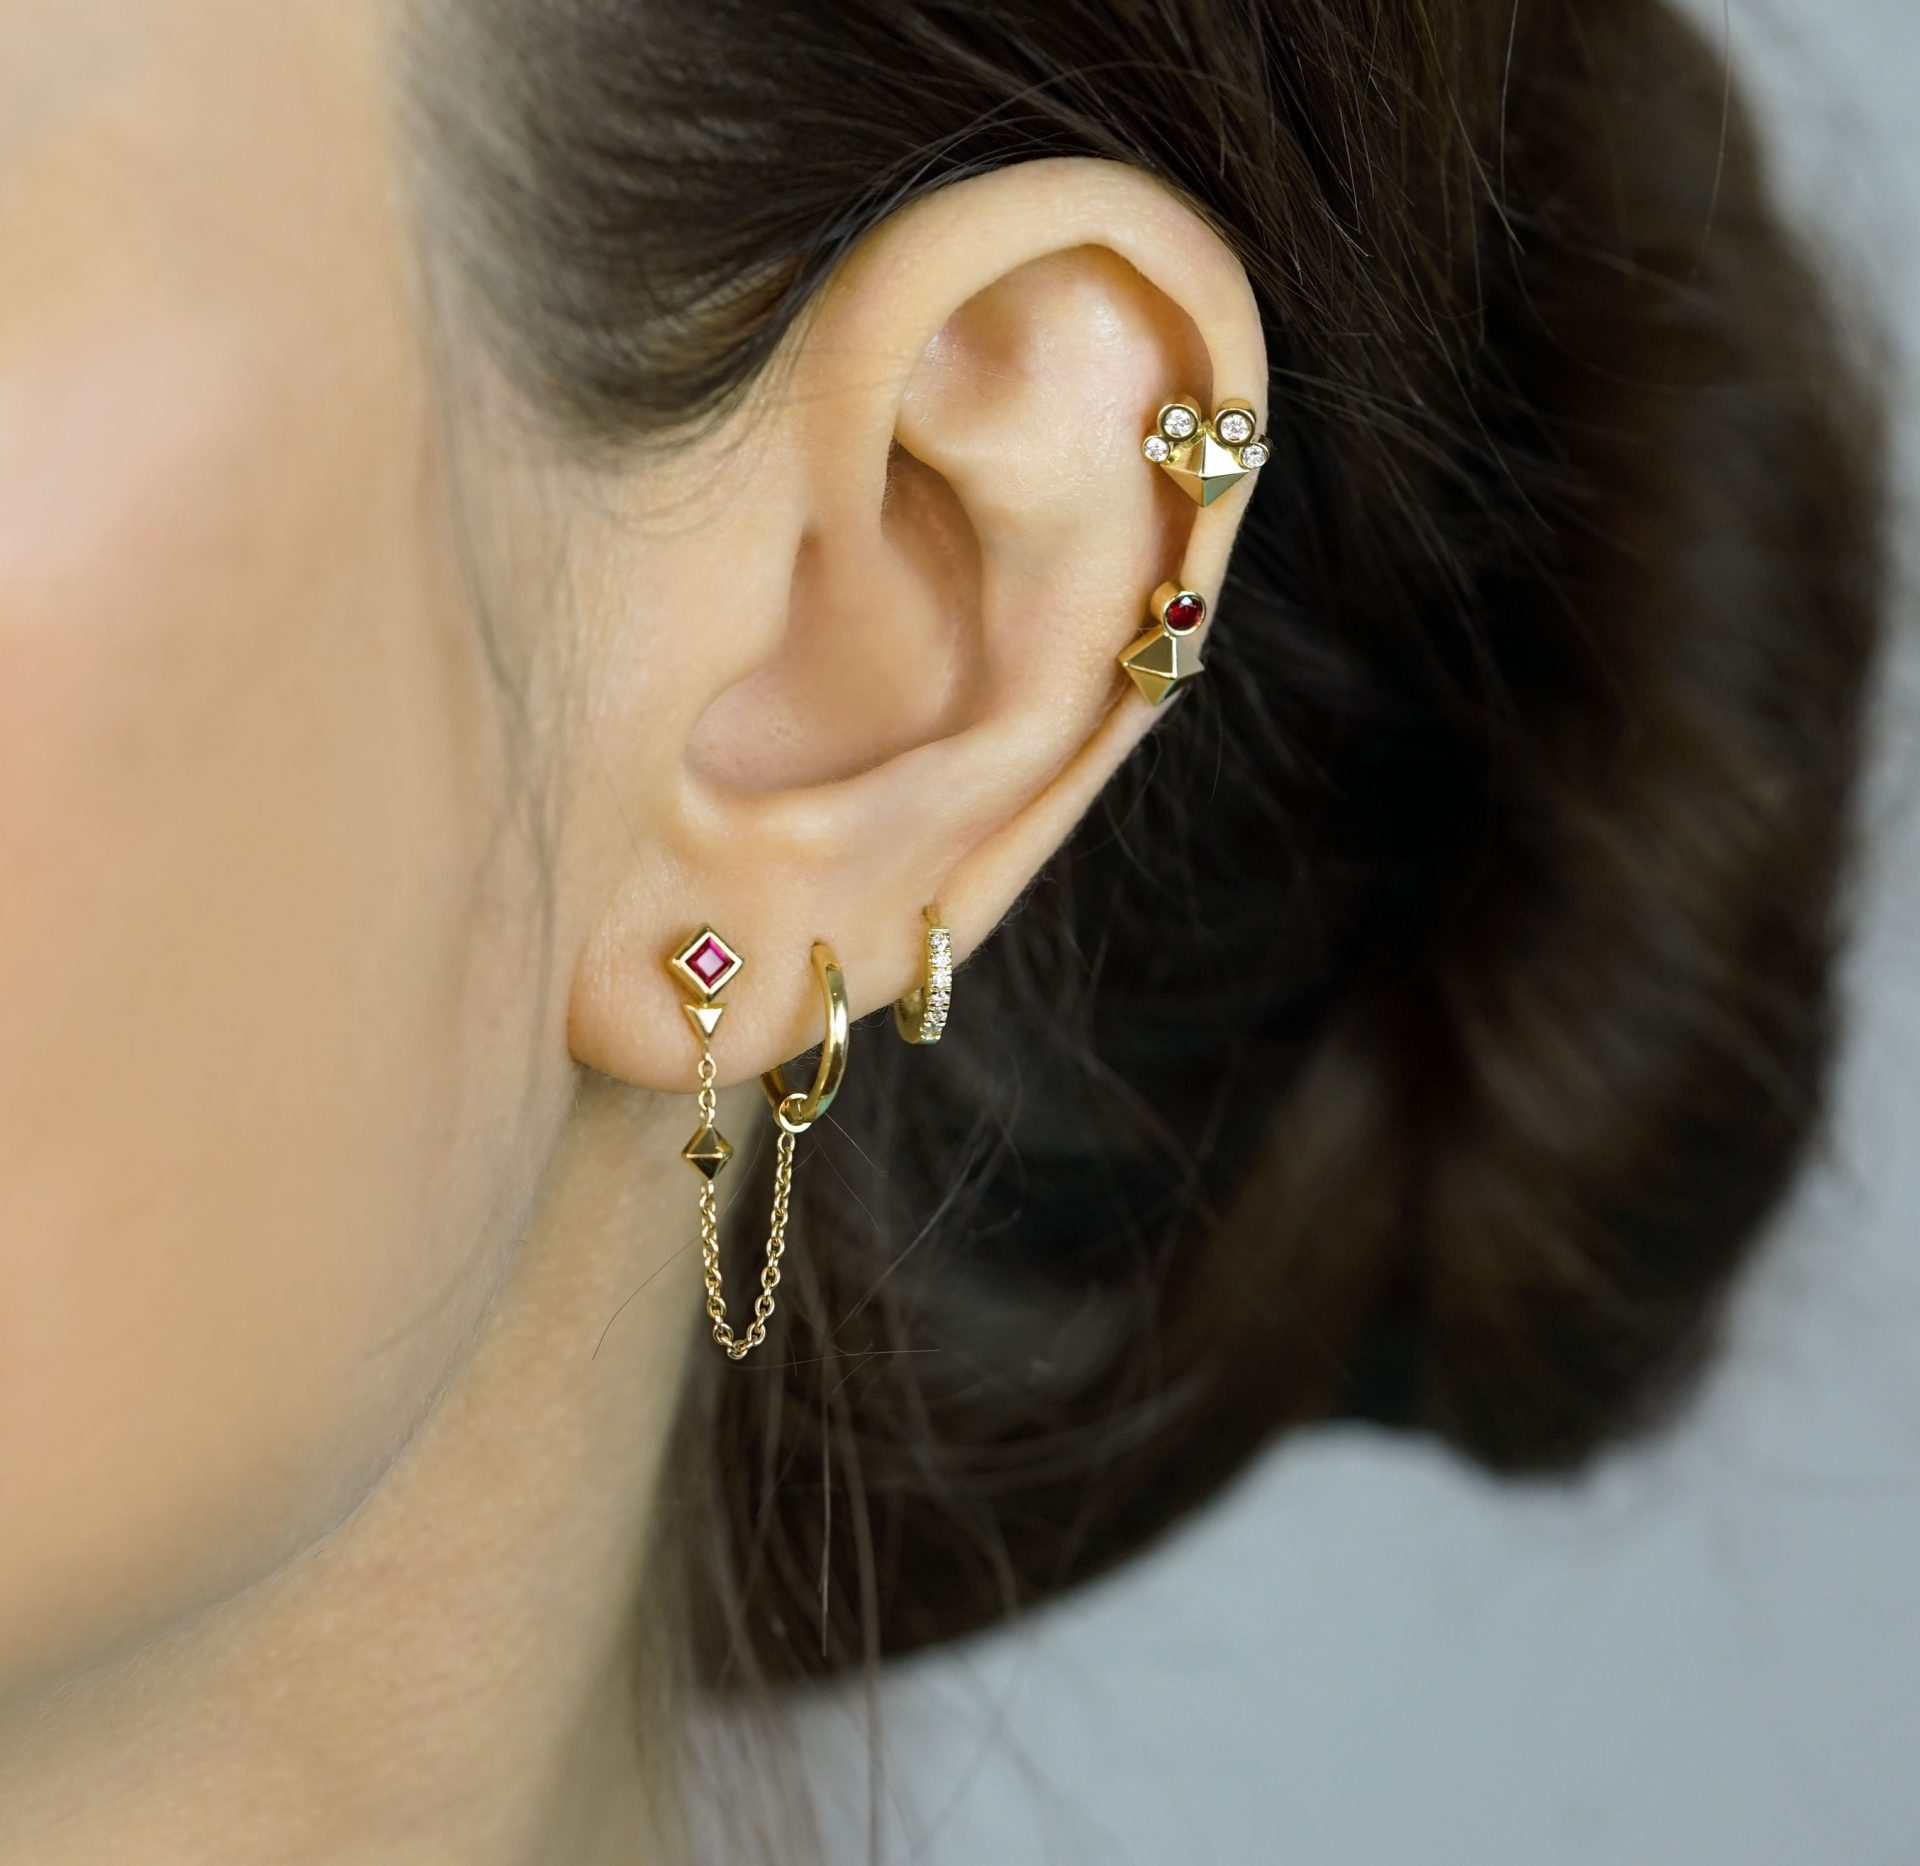 lena-cohen-fine-jewellery-british-designer-zodiac-collection-earrings-aries-leo-sagittarius-astrology-signs-piercing-ear-stack